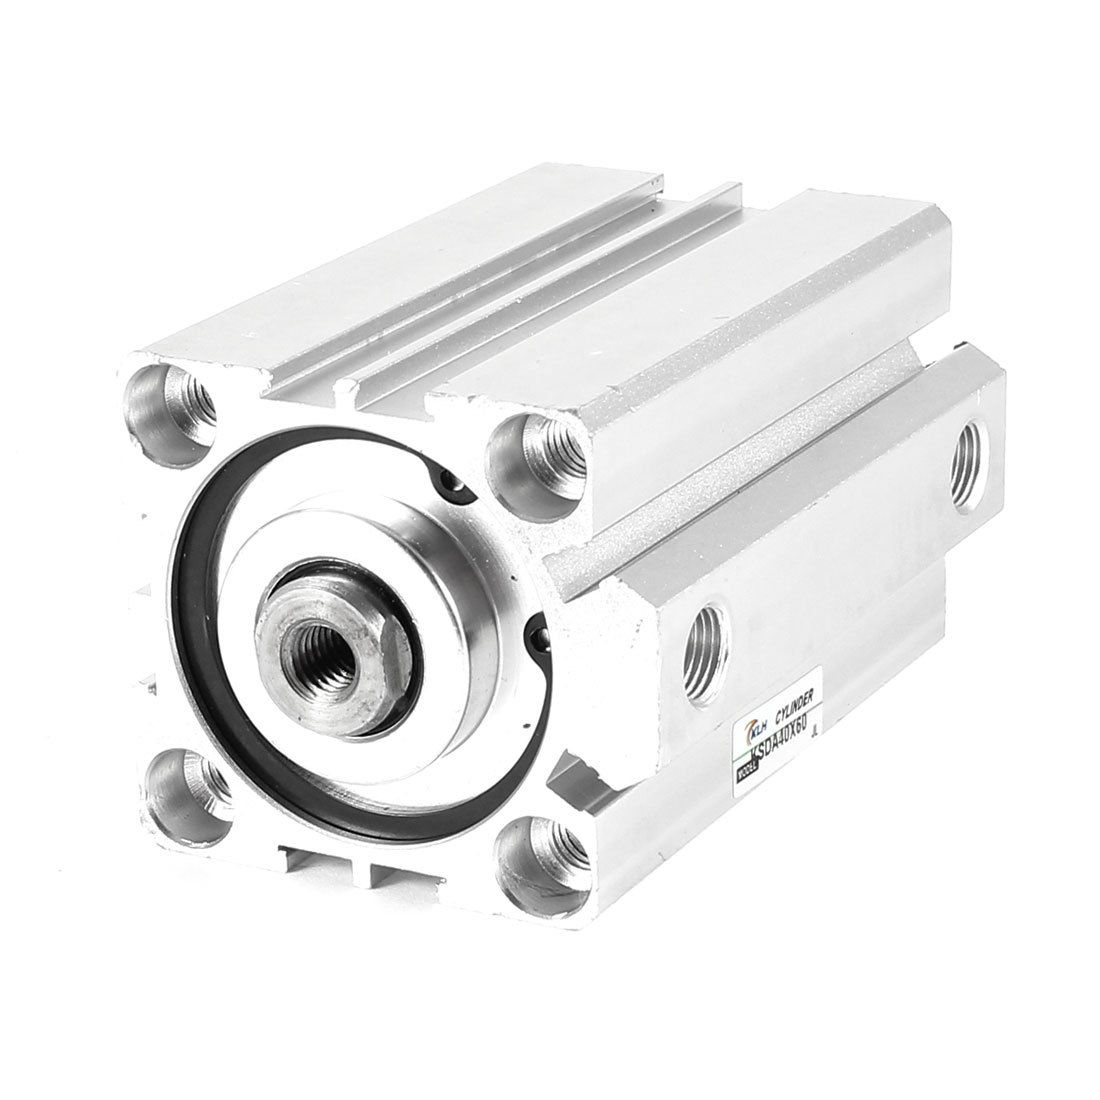 1 Pcs 63mm Bore 20mm Stroke Stainless steel Pneumatic Air Cylinder SDA63-20 фруктовая корзина lighting spaces 03019